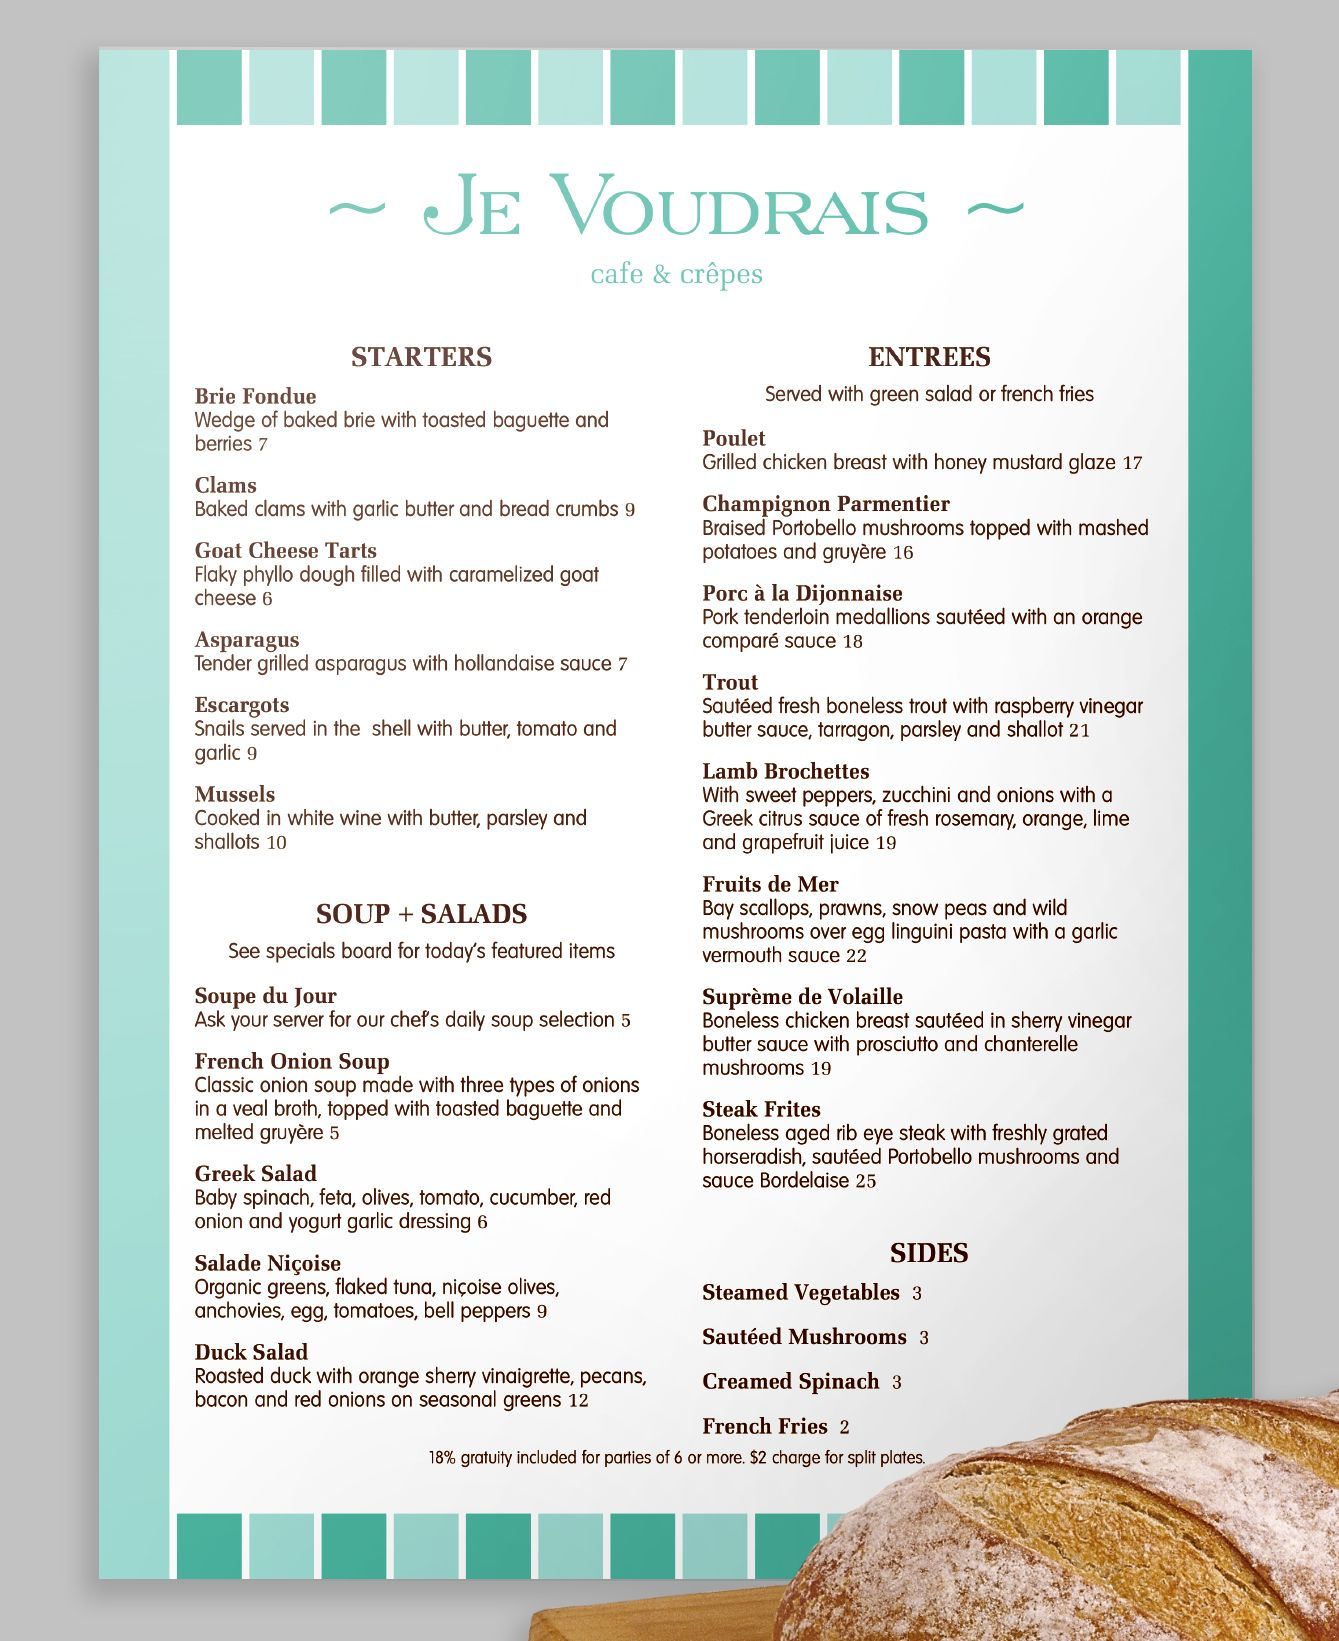 A Modern French Menu With A Stripe Design In Two Neat